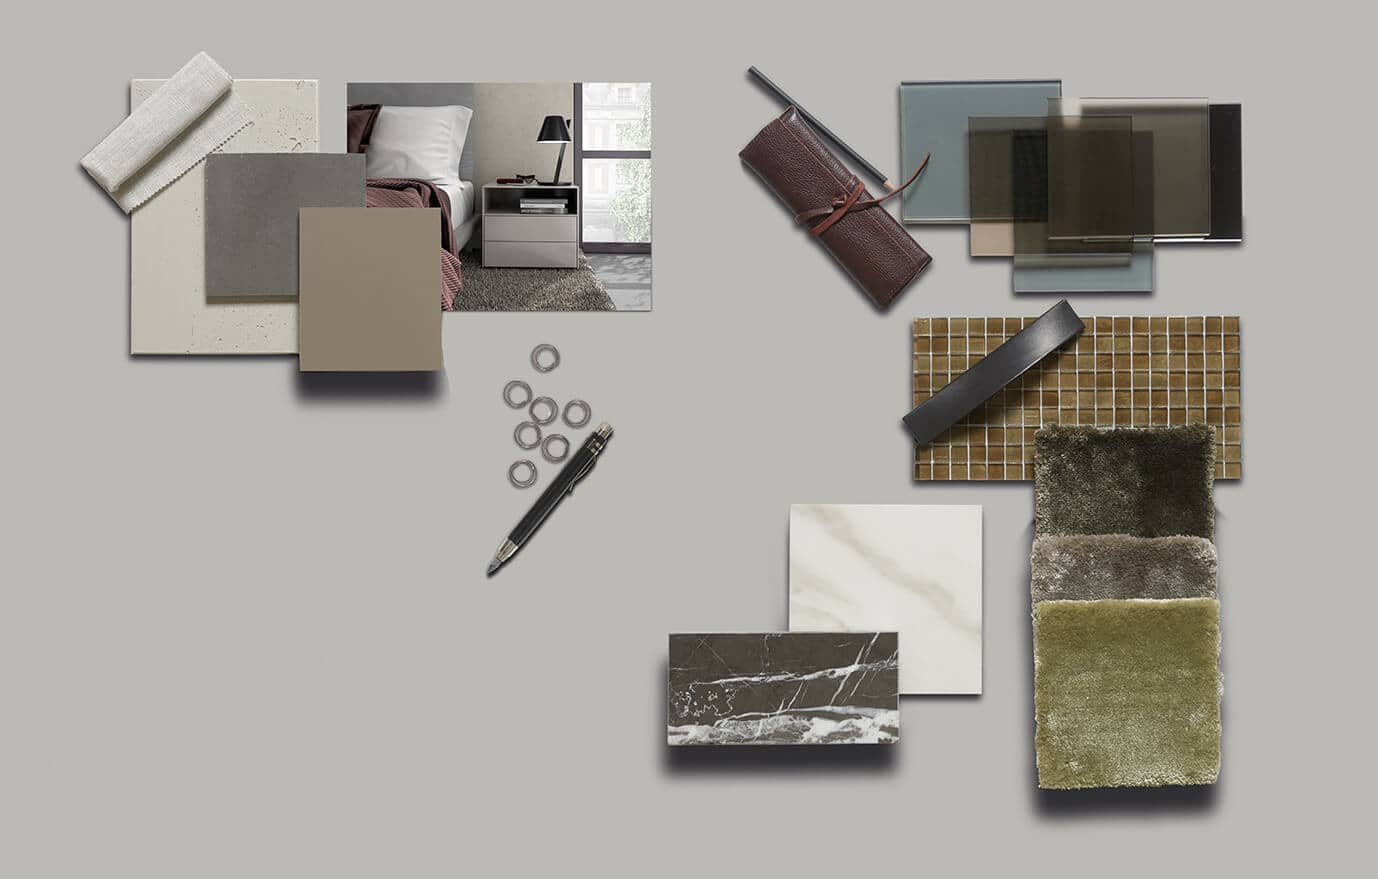 The picture depicts a collage of the different materials used by Ars Nova Collection.